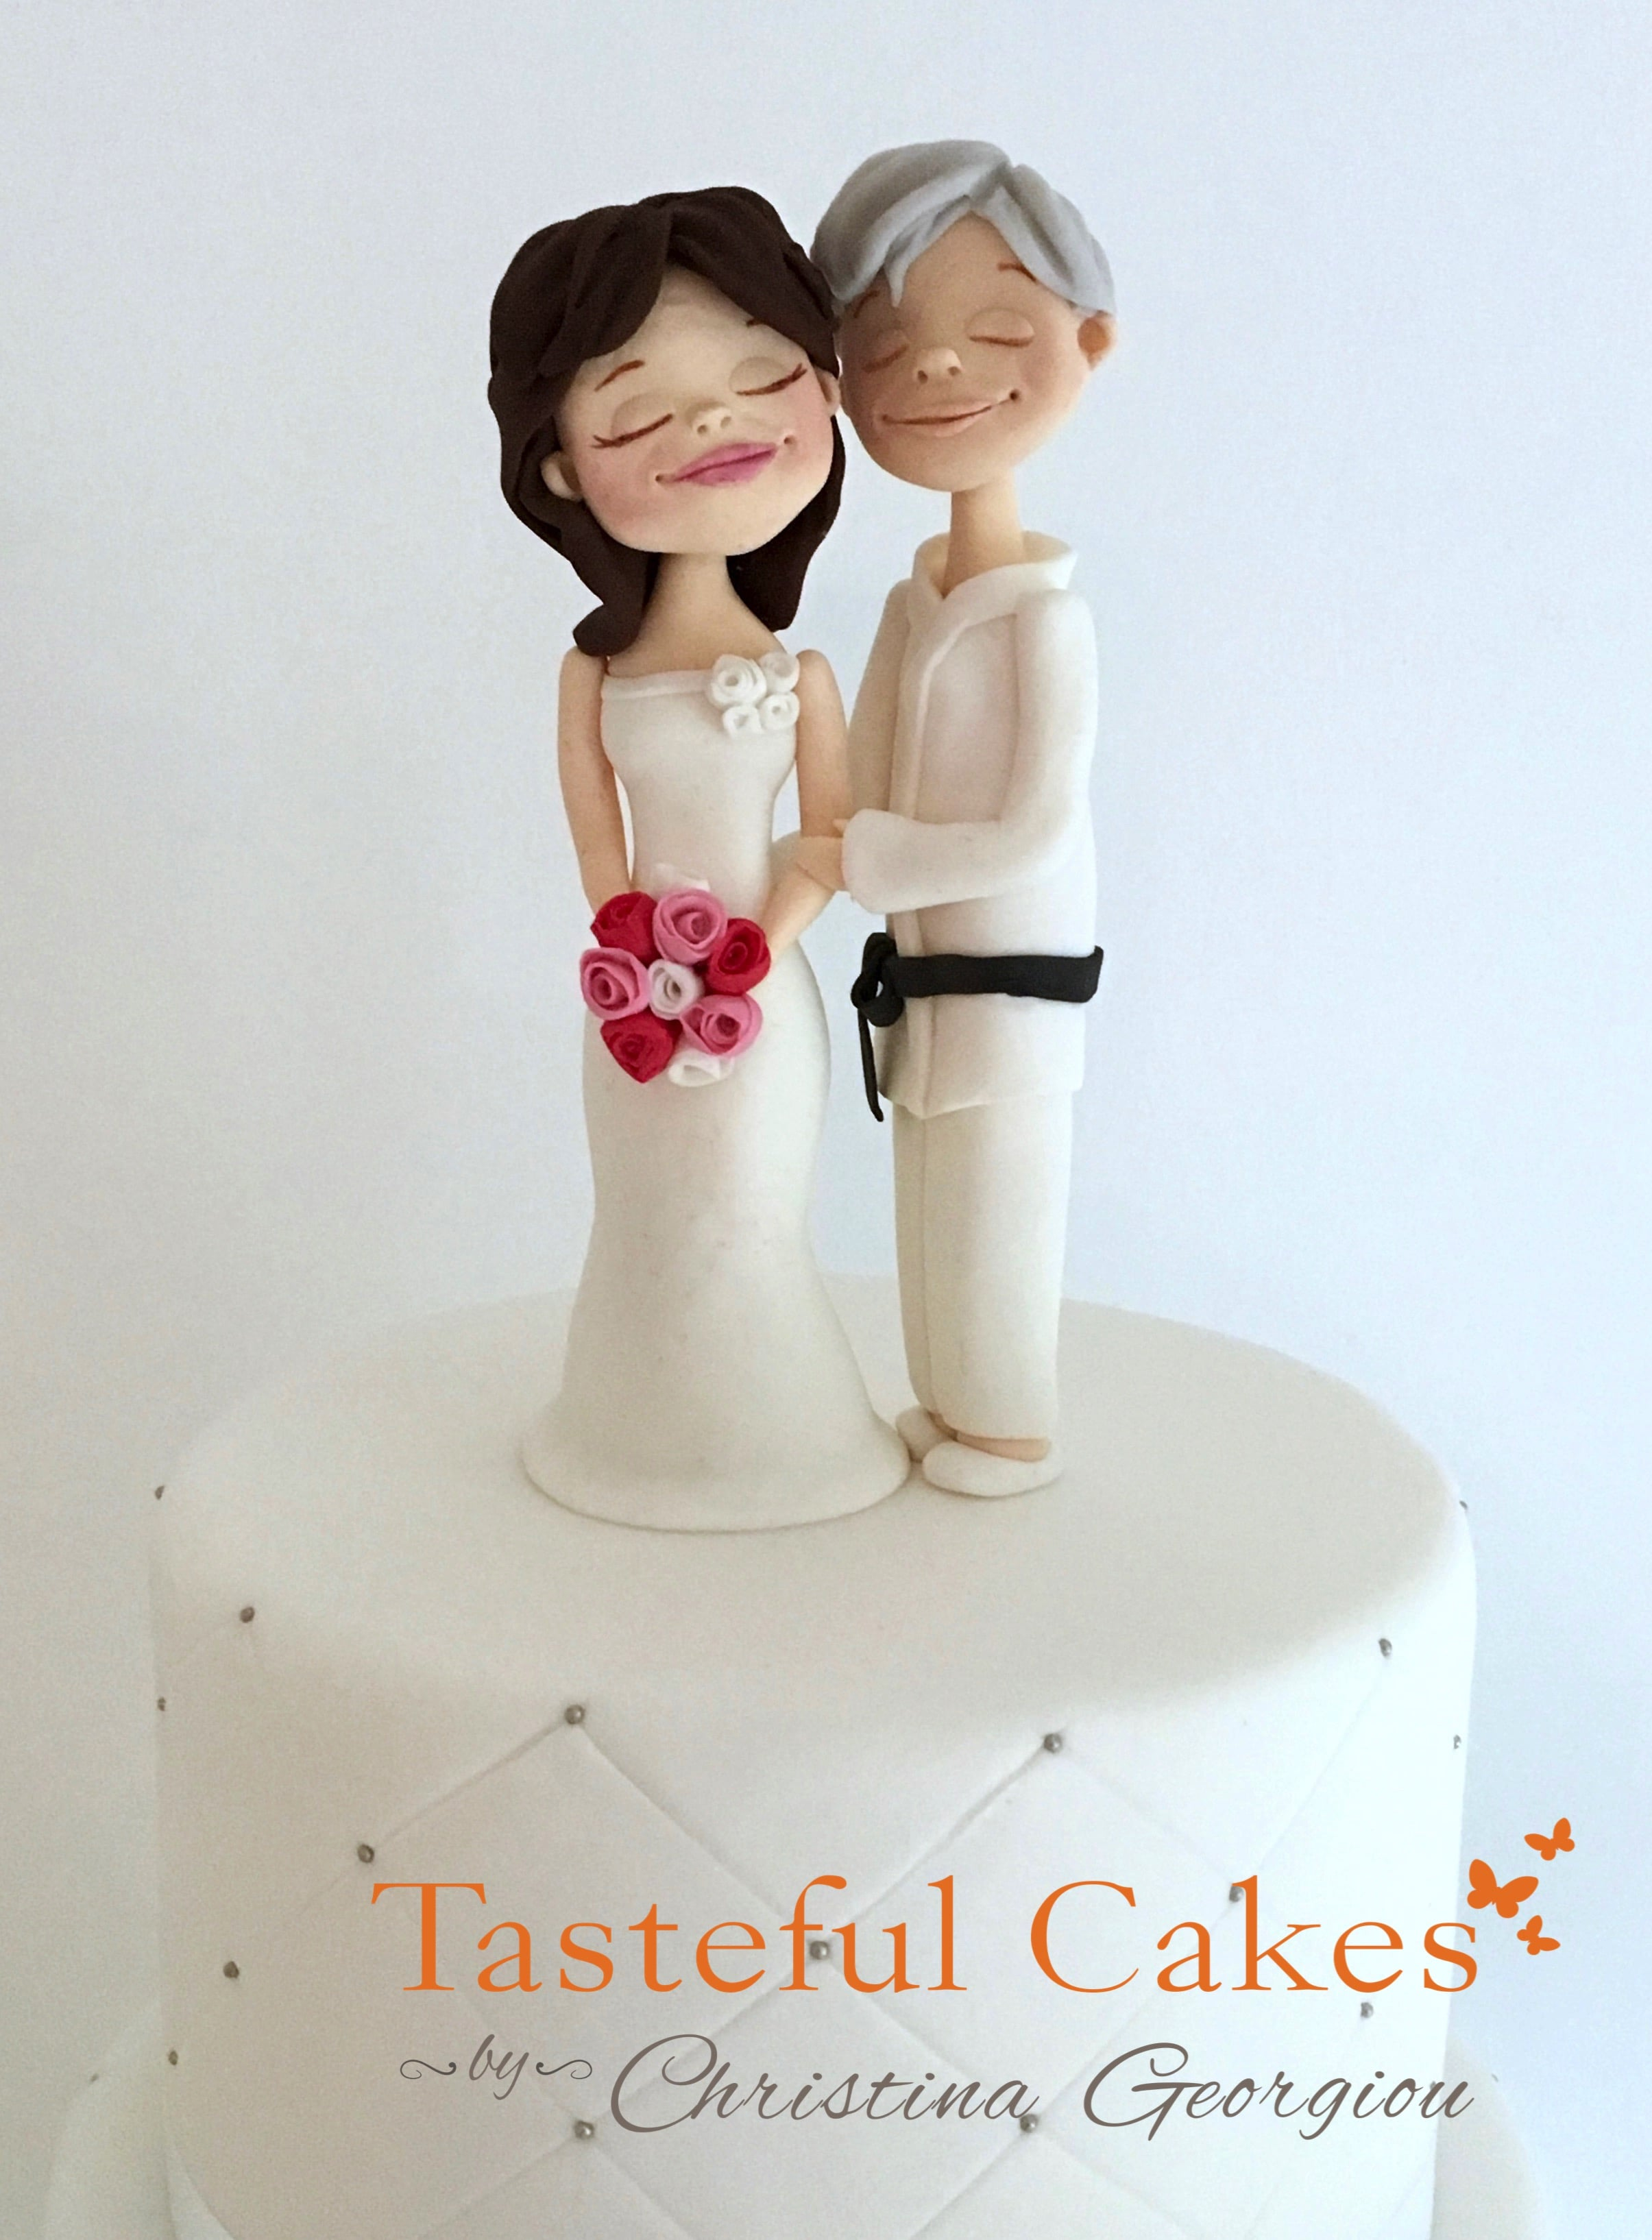 Cake Decoration Figures Archives Page 2 Of 4 Tasteful Cakes By Christina Georgiou